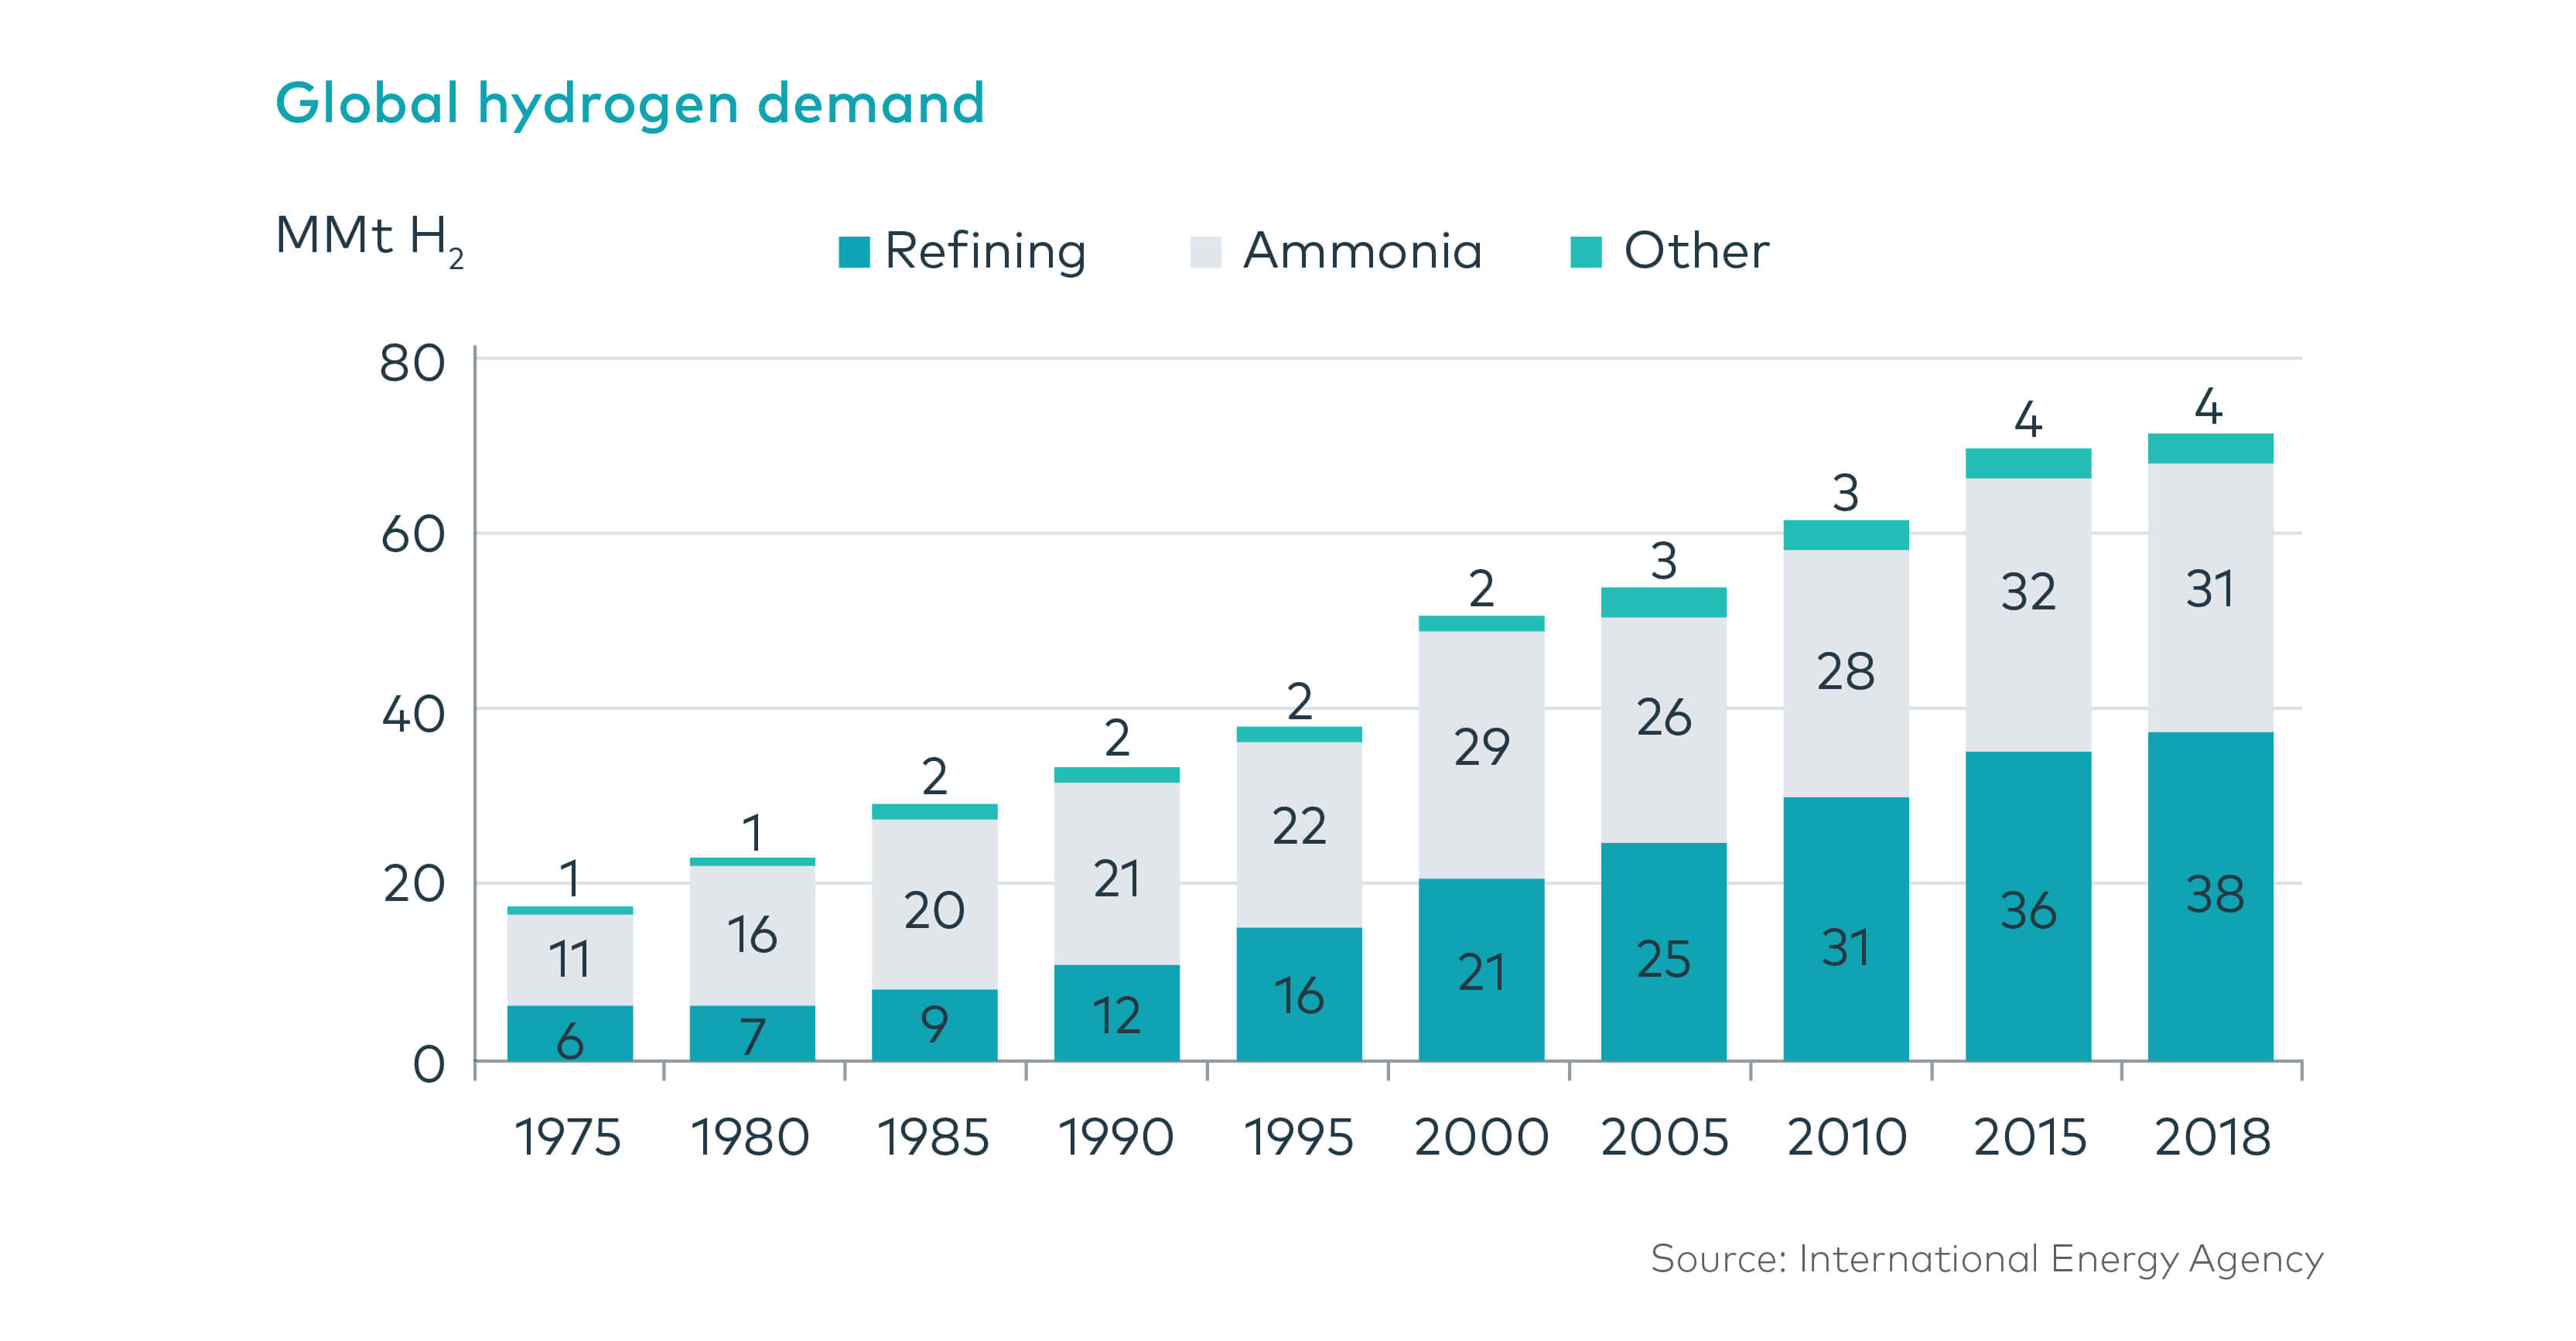 Global hydrogen demand has bee steadily increasing over the last 40 years.